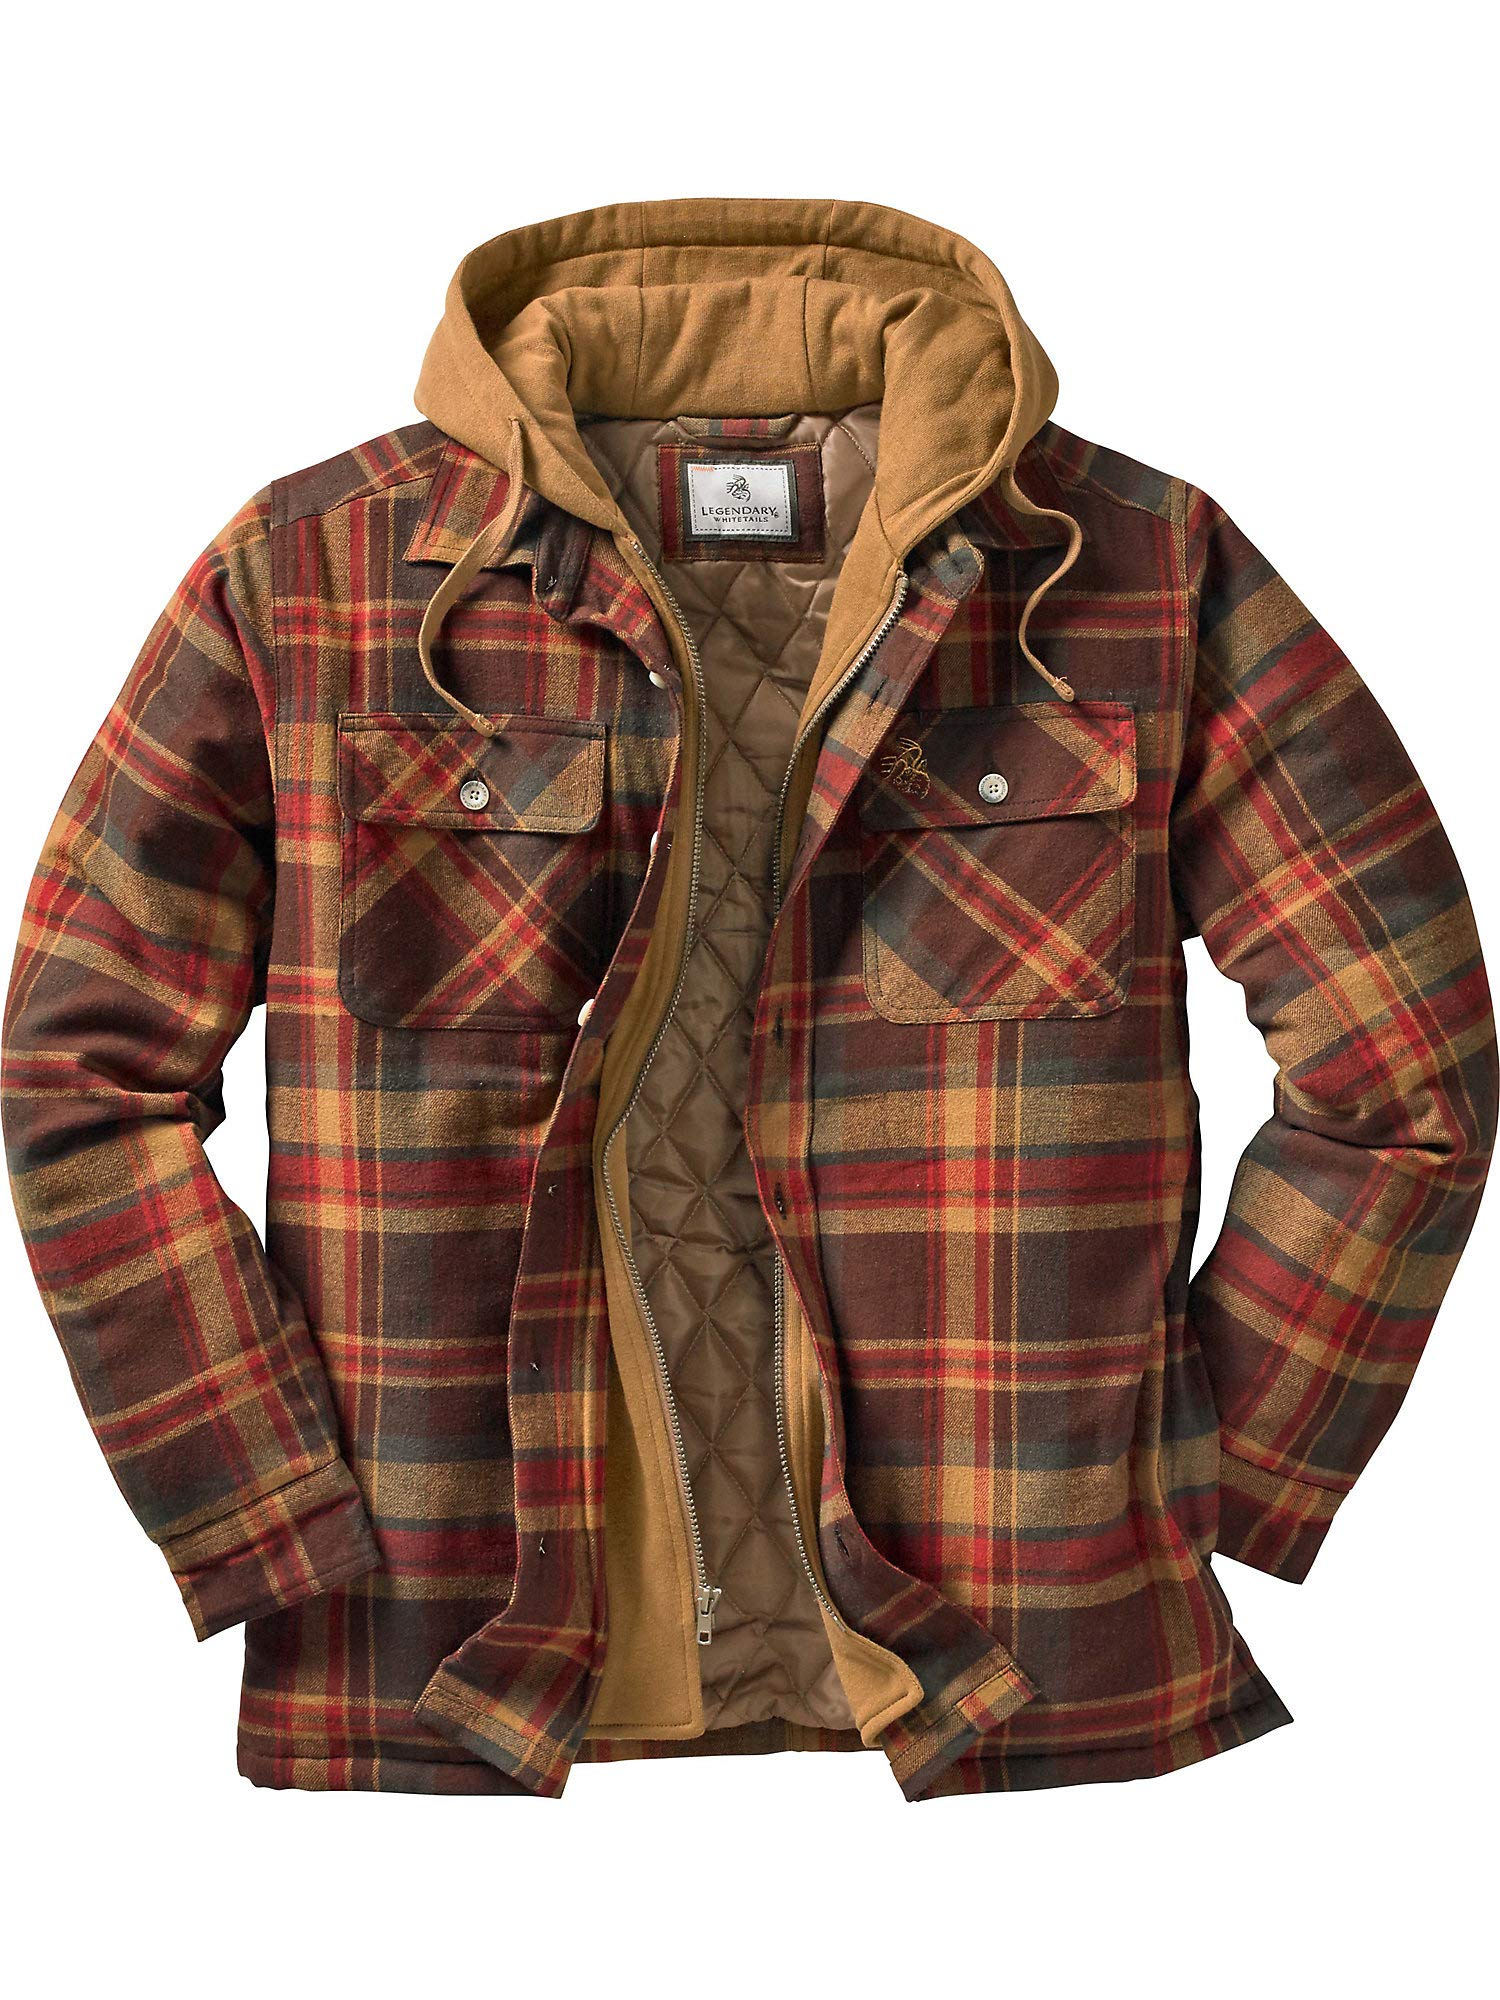 Legendary Whitetails Maplewood Hooded Shirt Jacket, Maplewood Plaid, XXX-Large Tall by Legendary Whitetails